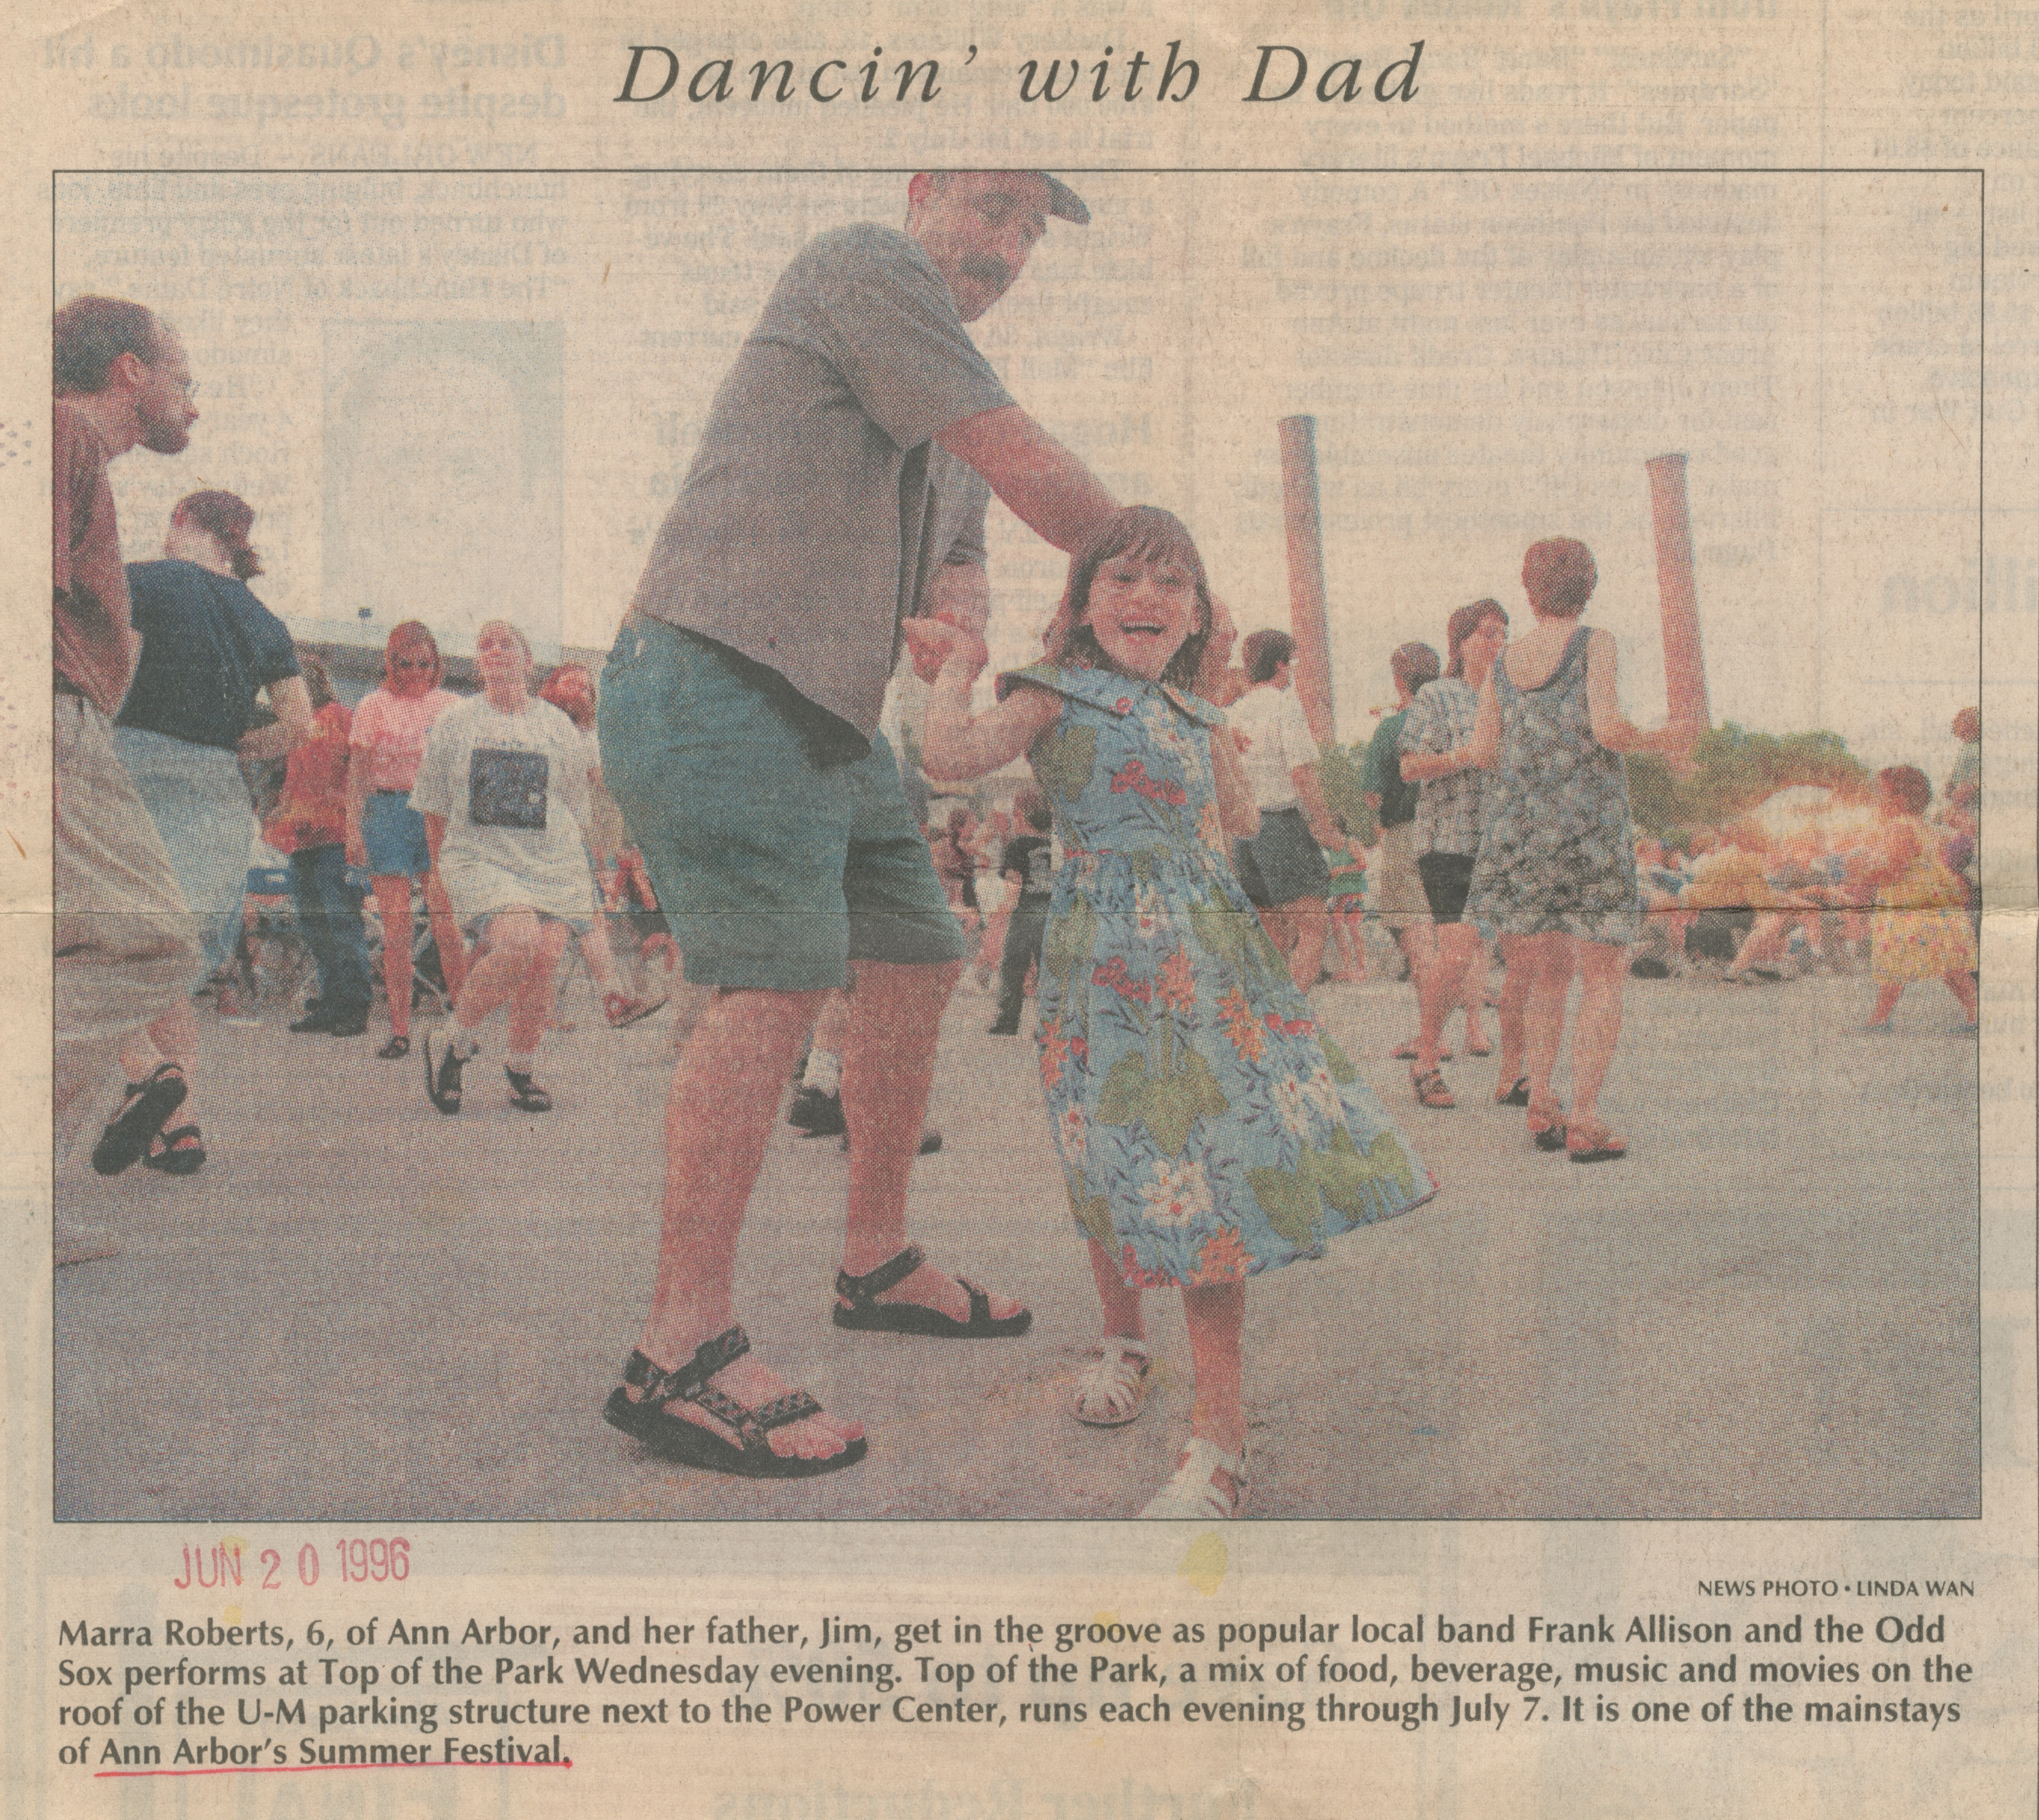 Dancin' with Dad image